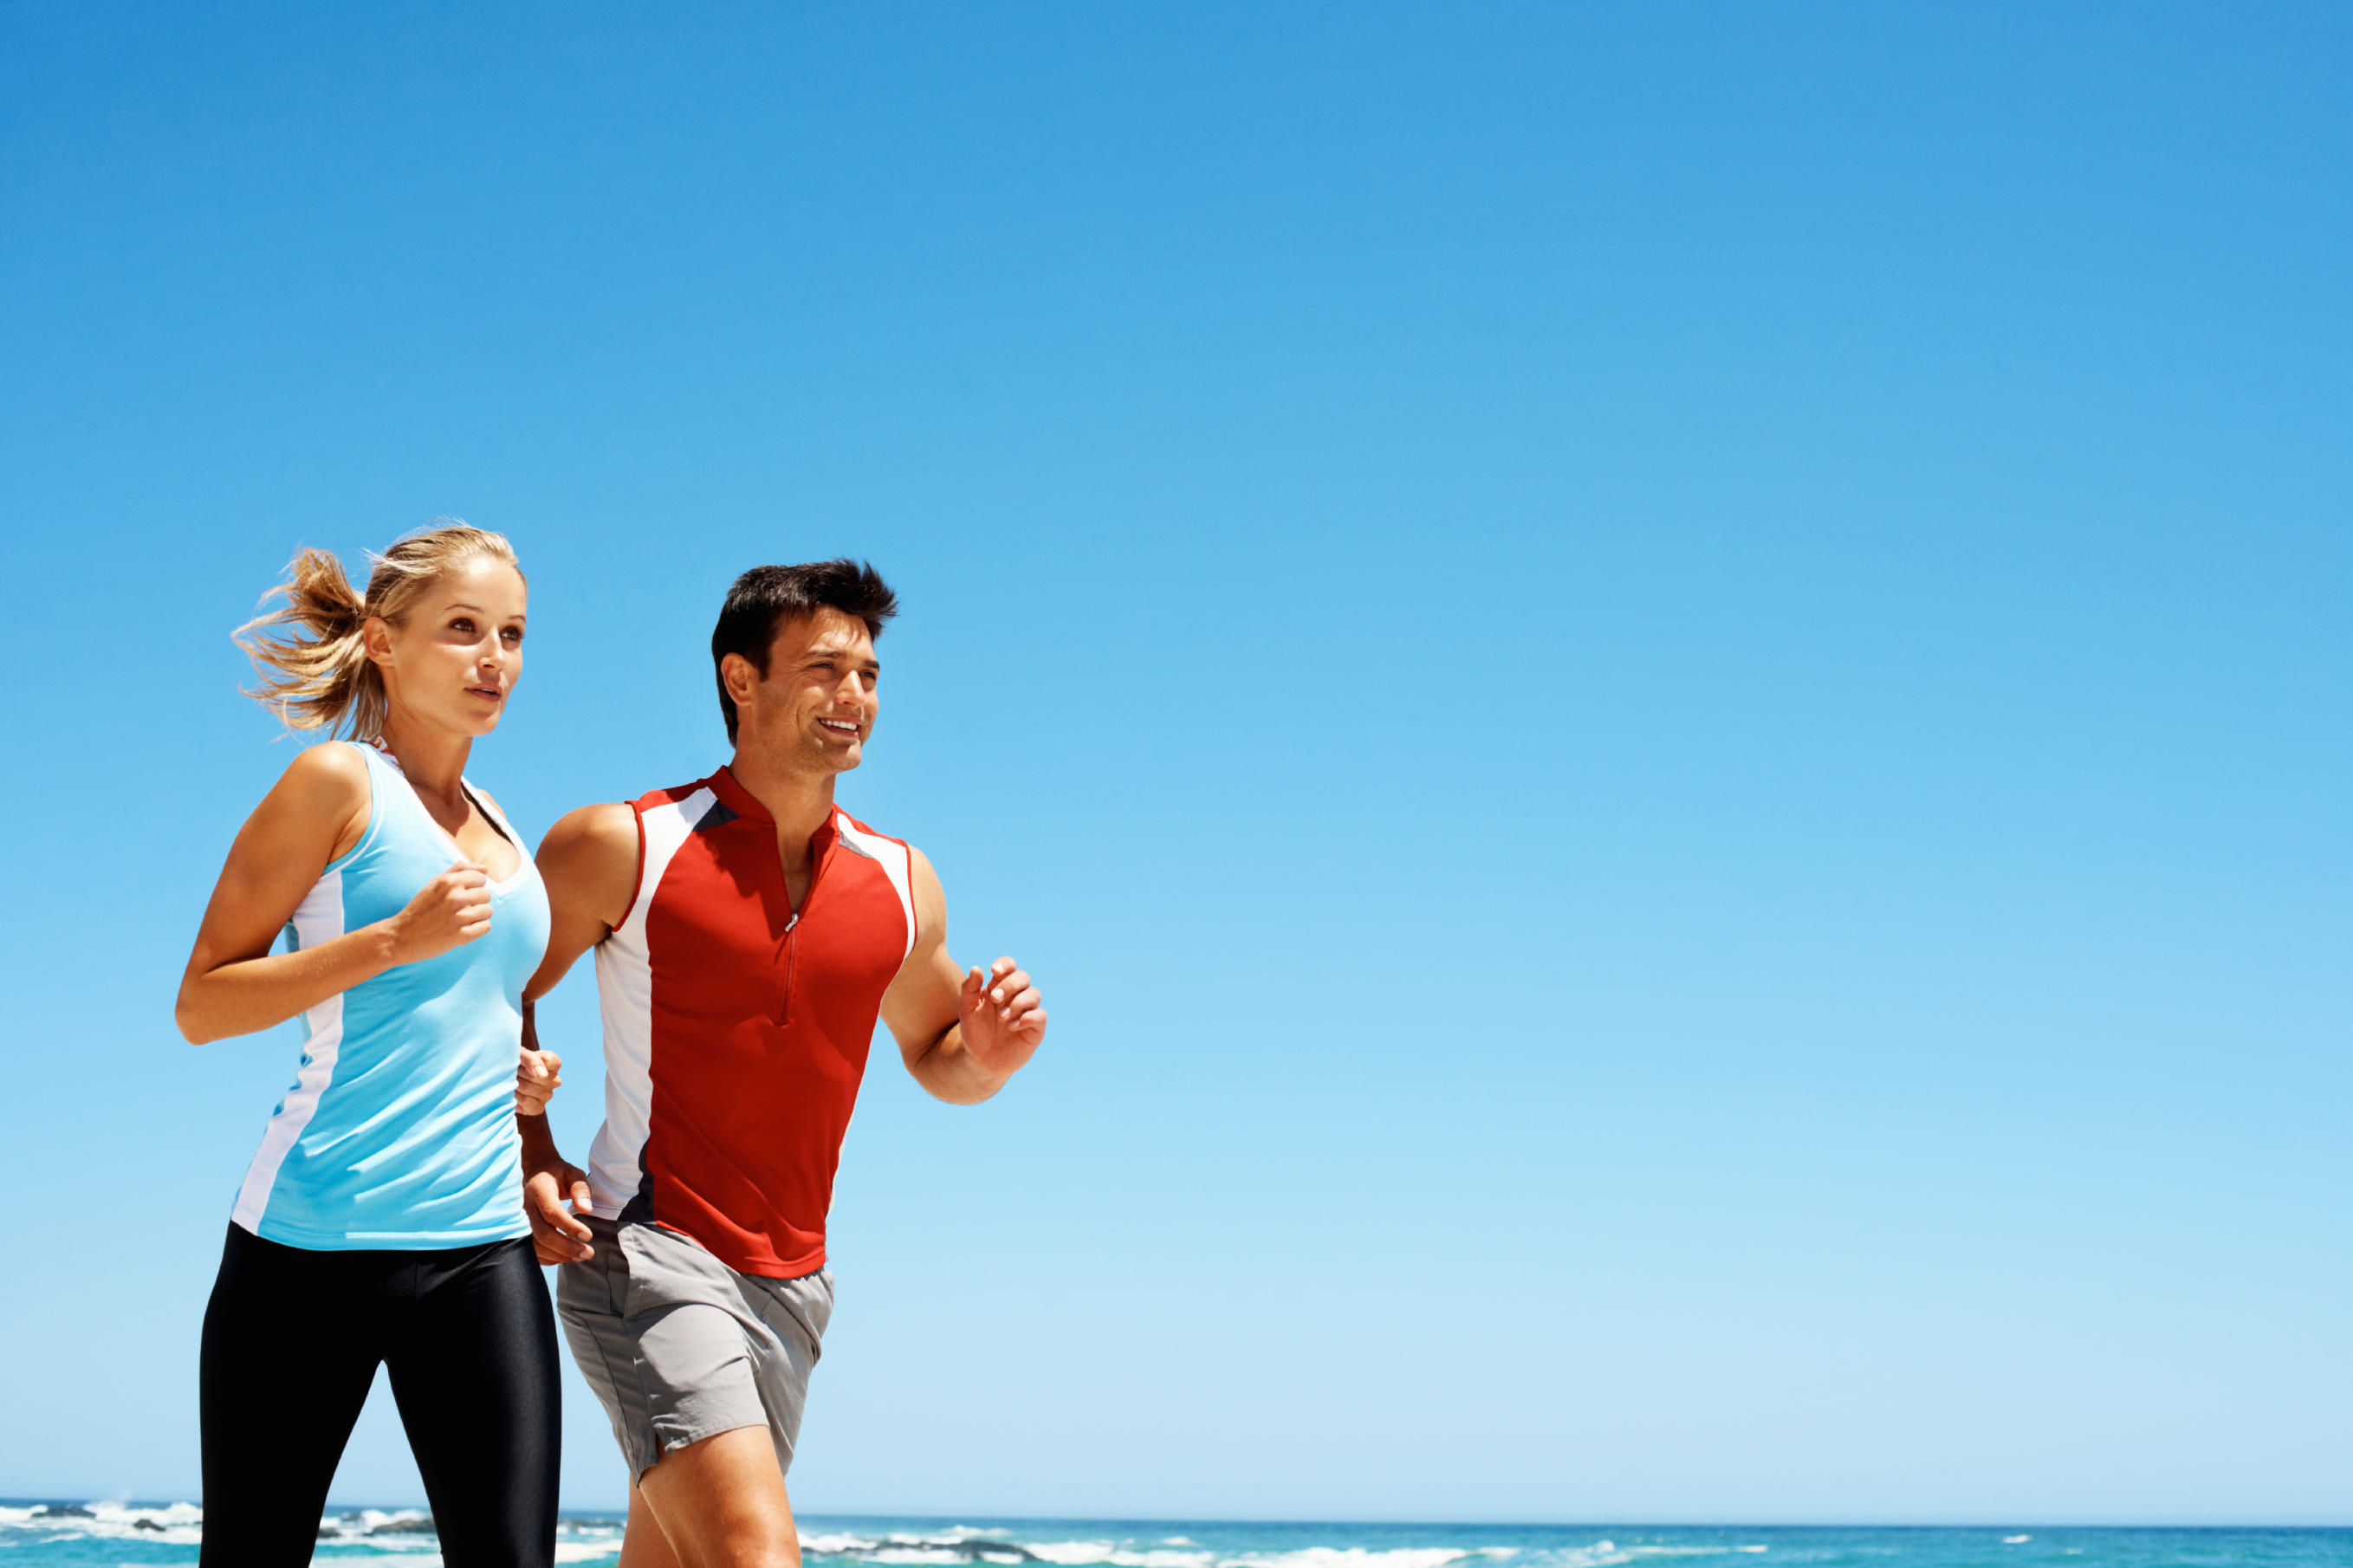 how exercising helps you in your life If you exercise regularly, you understand there are many more benefits other than just weight loss or staying in shape exercise helps improve all aspects of your life, including work productivity.